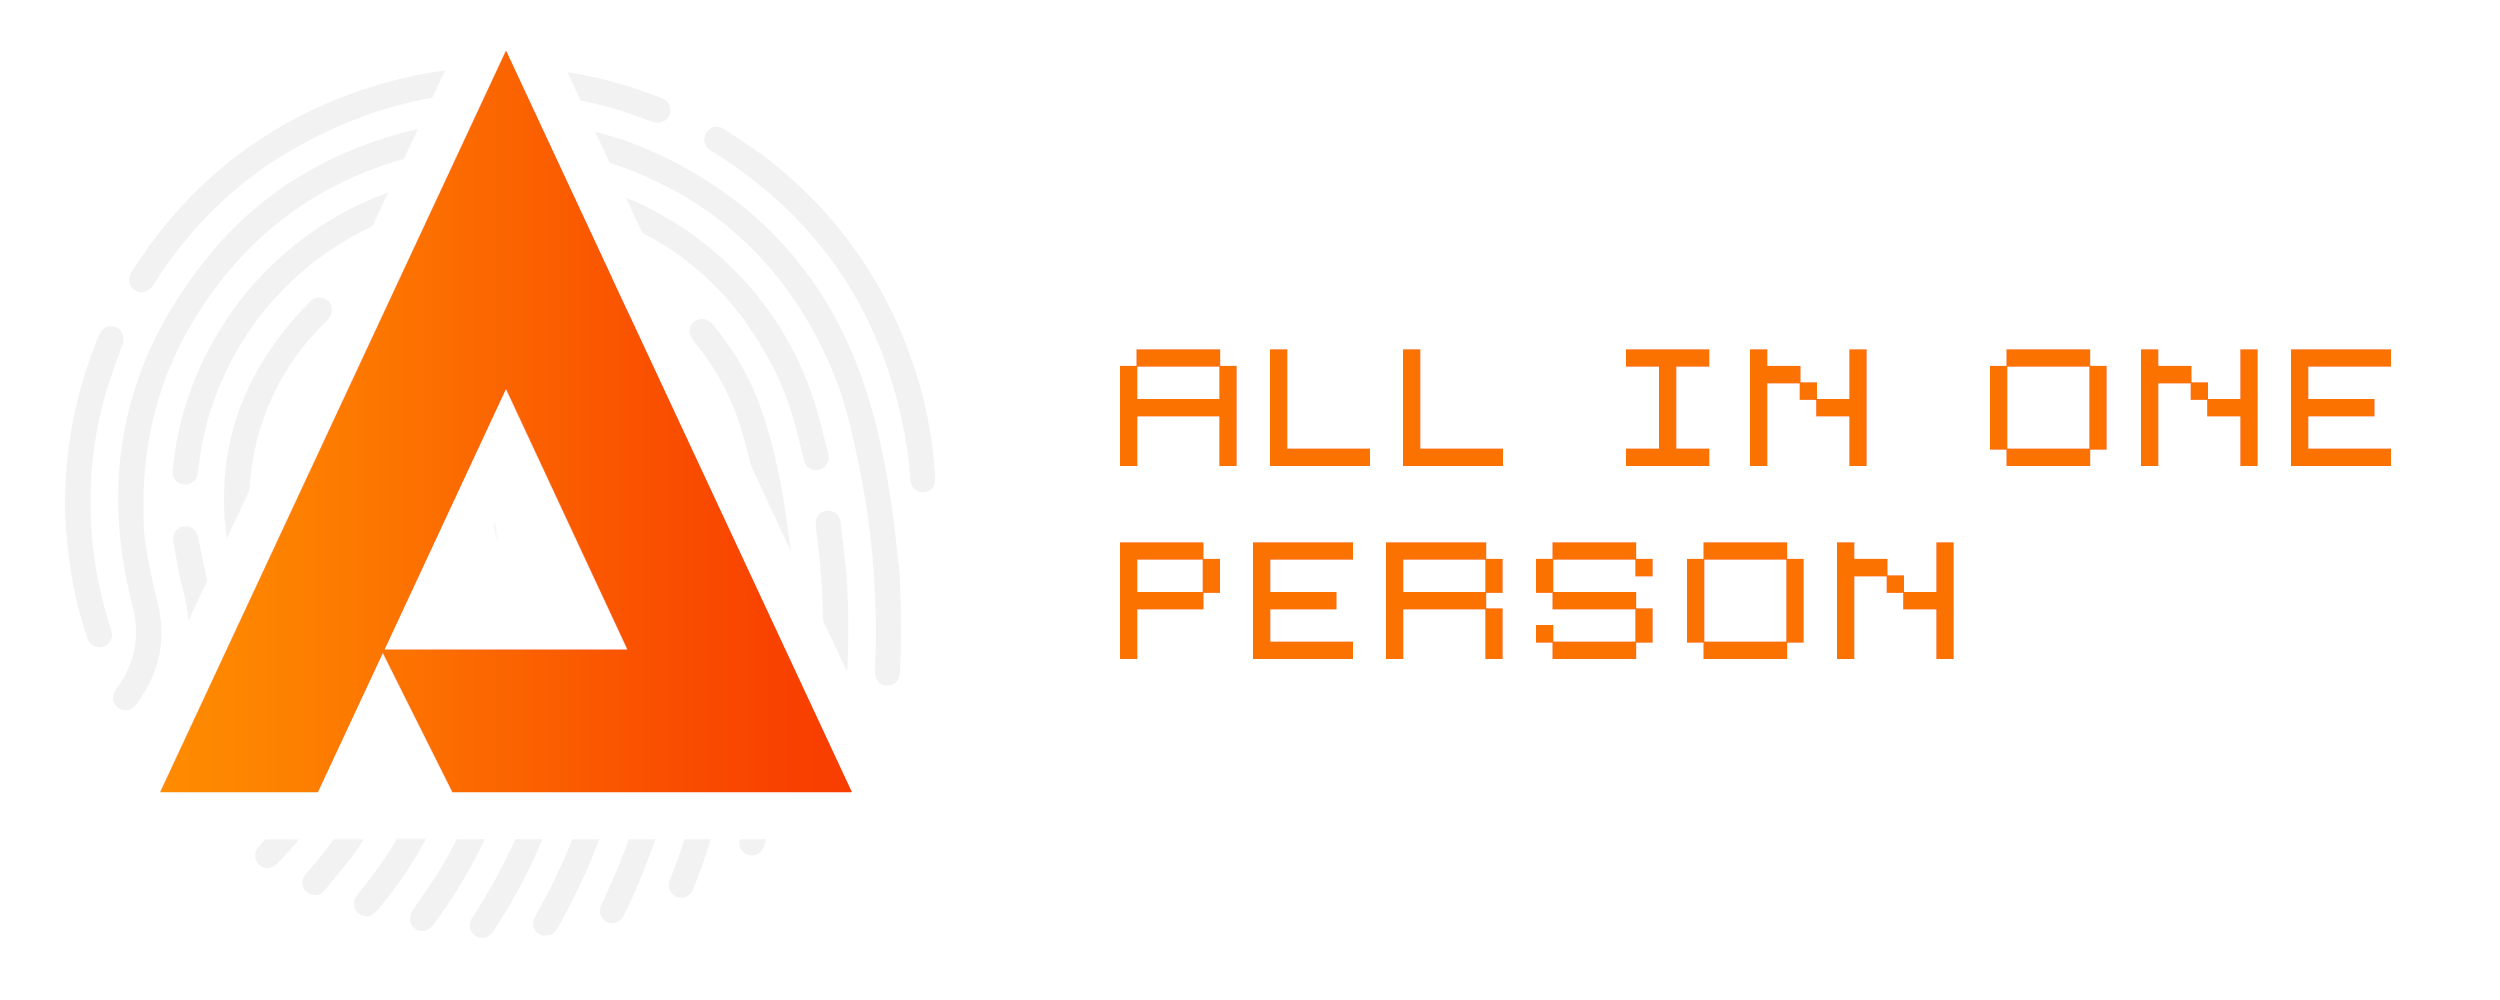 All-In-One Person